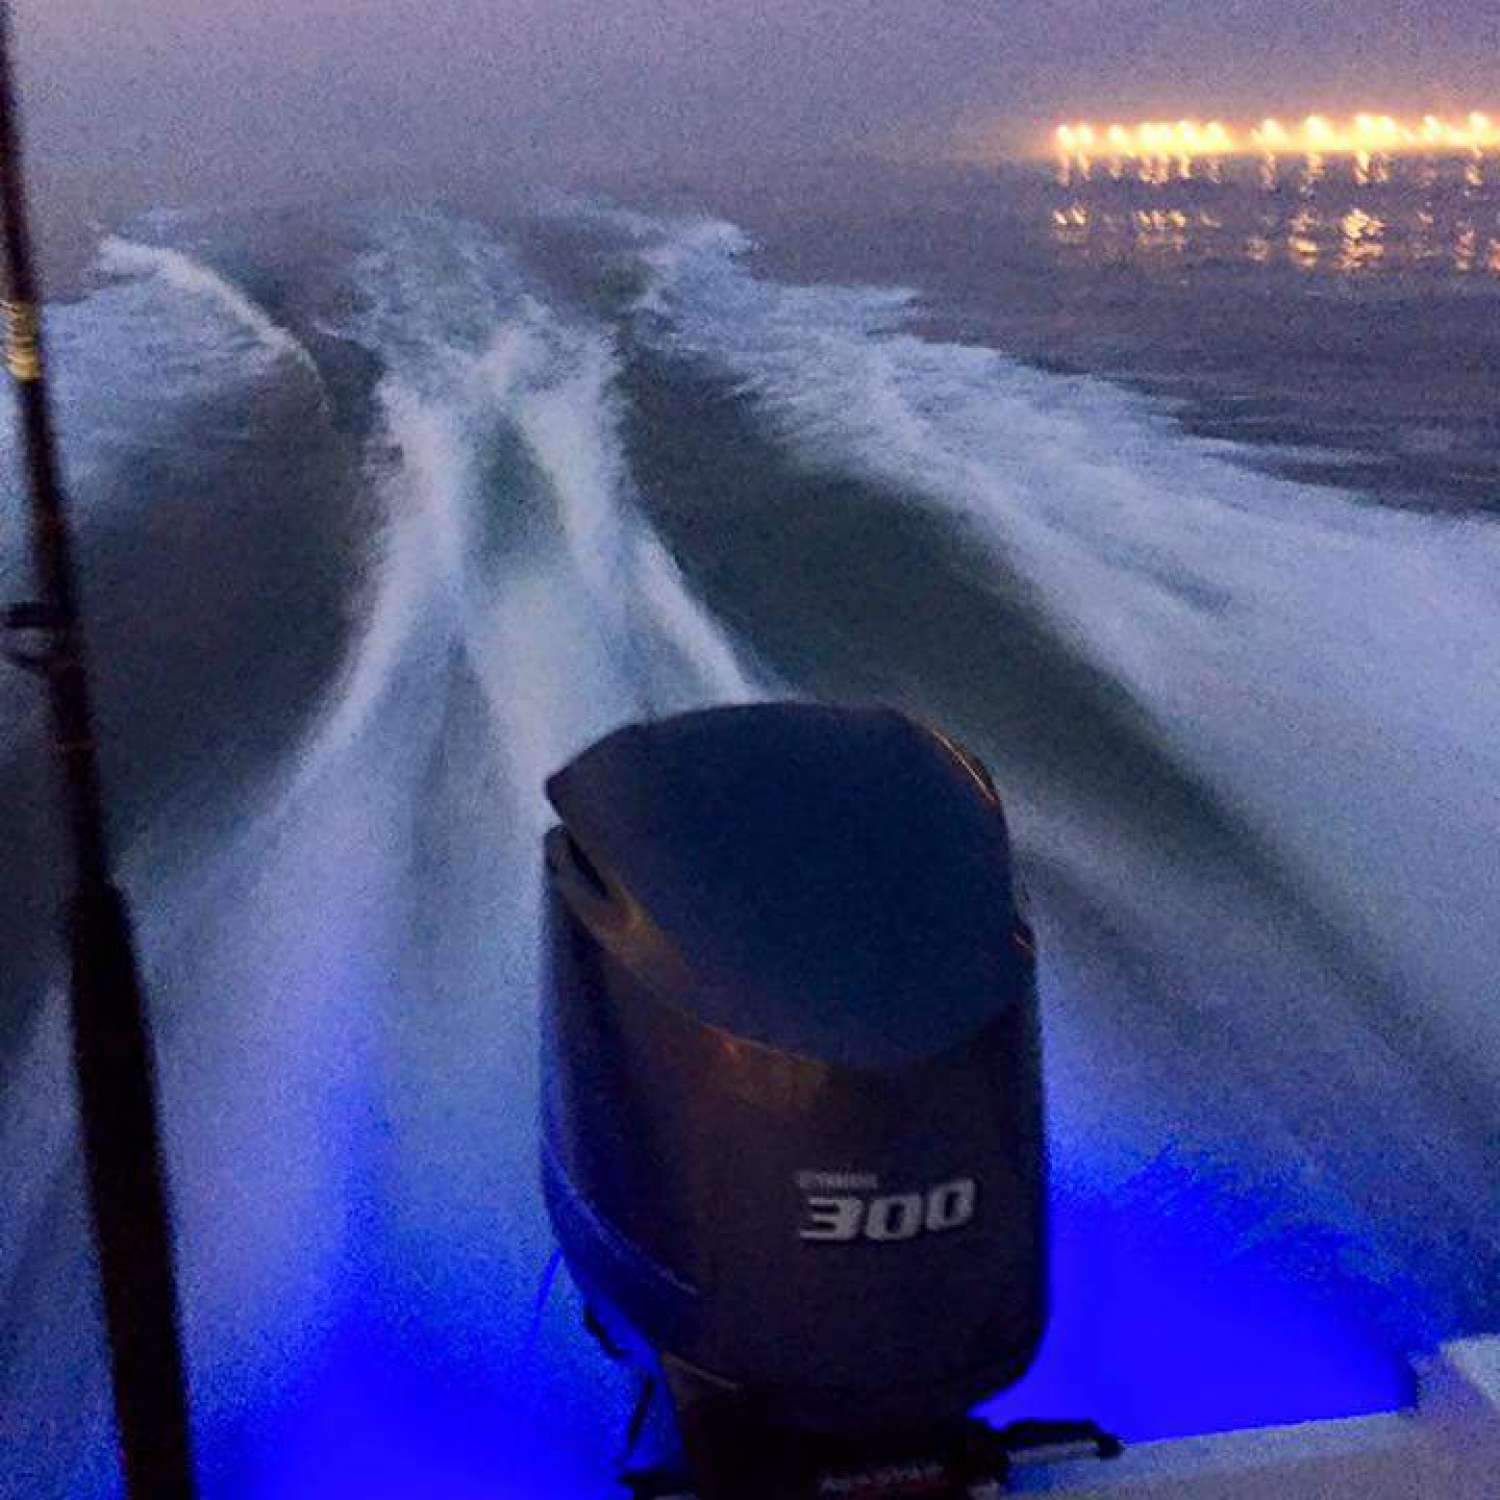 Title: Oc Inlet Zero Dark Thirty - On board their Sportsman Open 252 Center Console - Location: Grasonville, Maryland. Participating in the Photo Contest #SportsmanFebruary2016